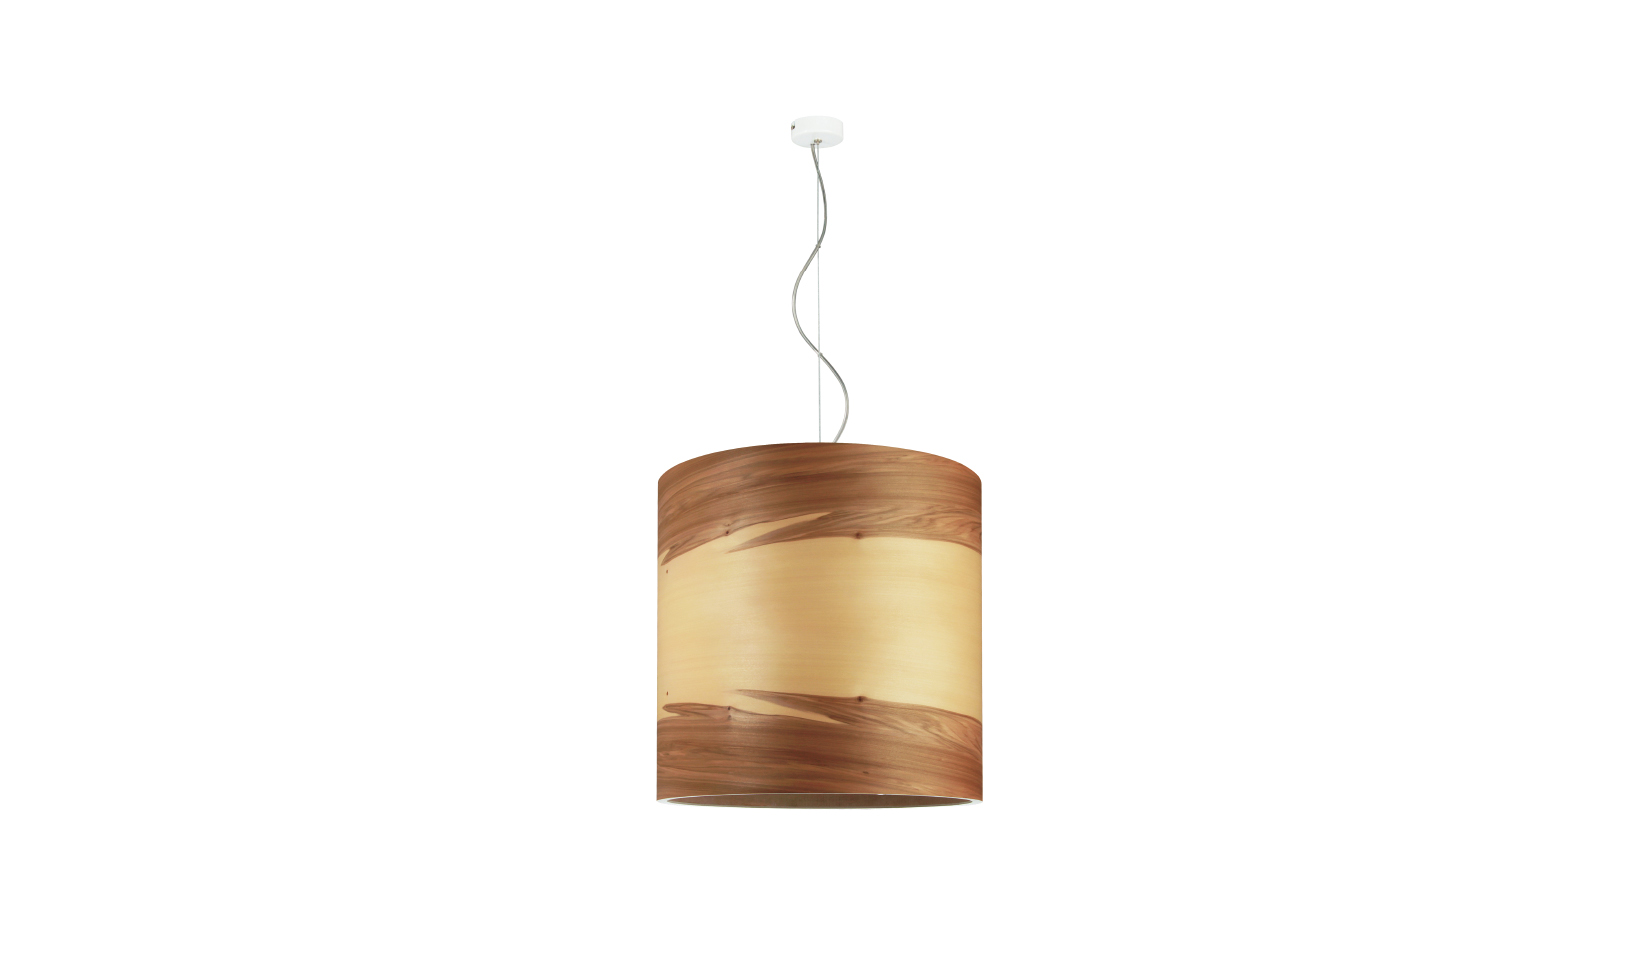 dreizehngrad pendant lamp model Funk 40/40P satin walnut veneer lamp design lamp